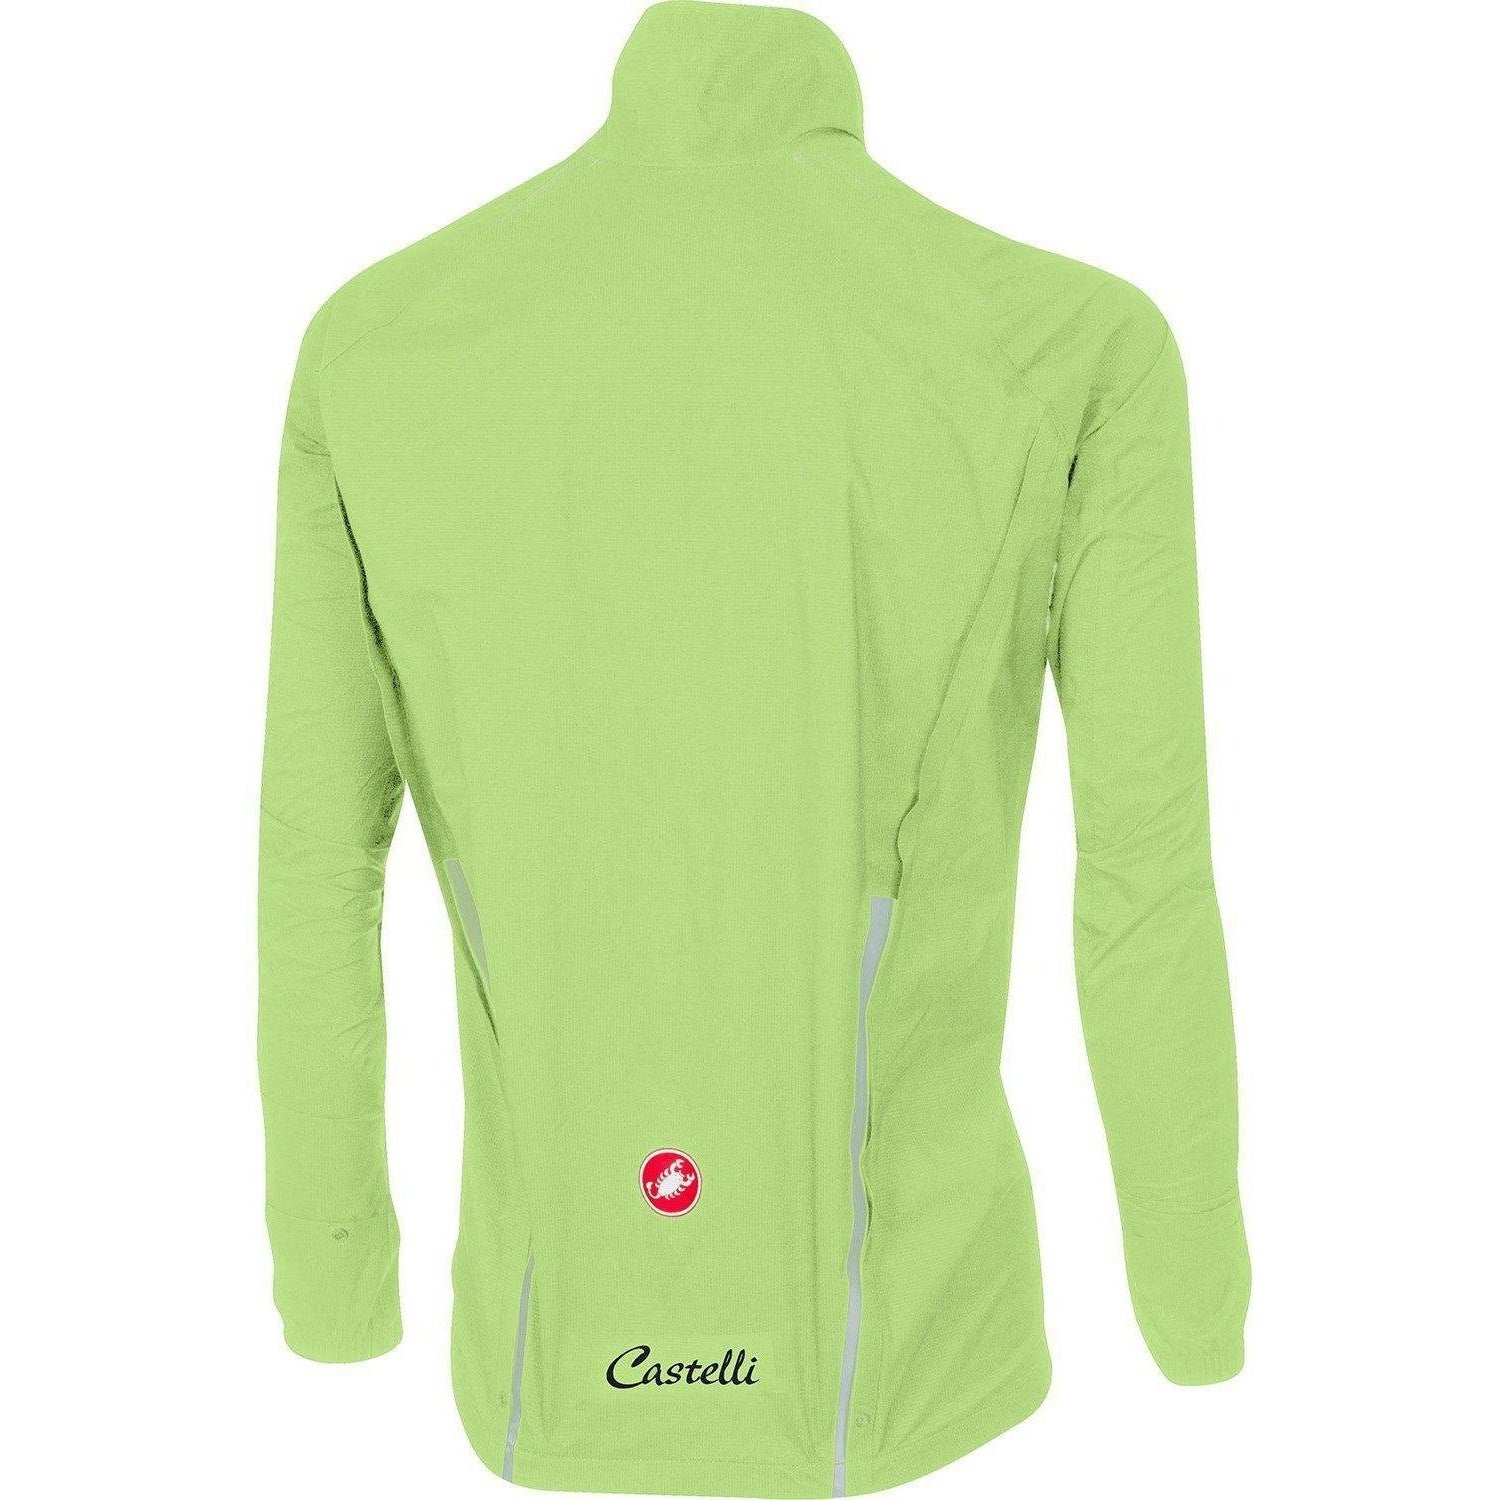 Castelli-Castelli Women's Emergency Rain Jacket--saddleback-elite-performance-cycling